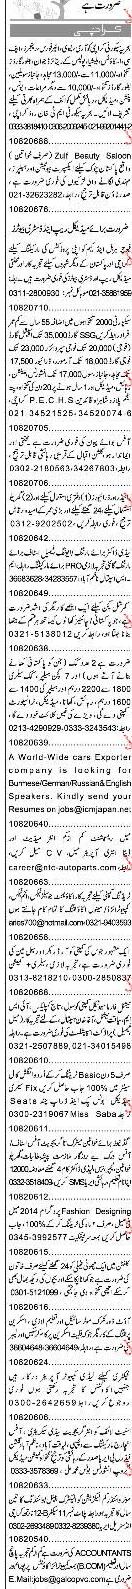 Sunday Express Classified Security Guards Job Opportunity